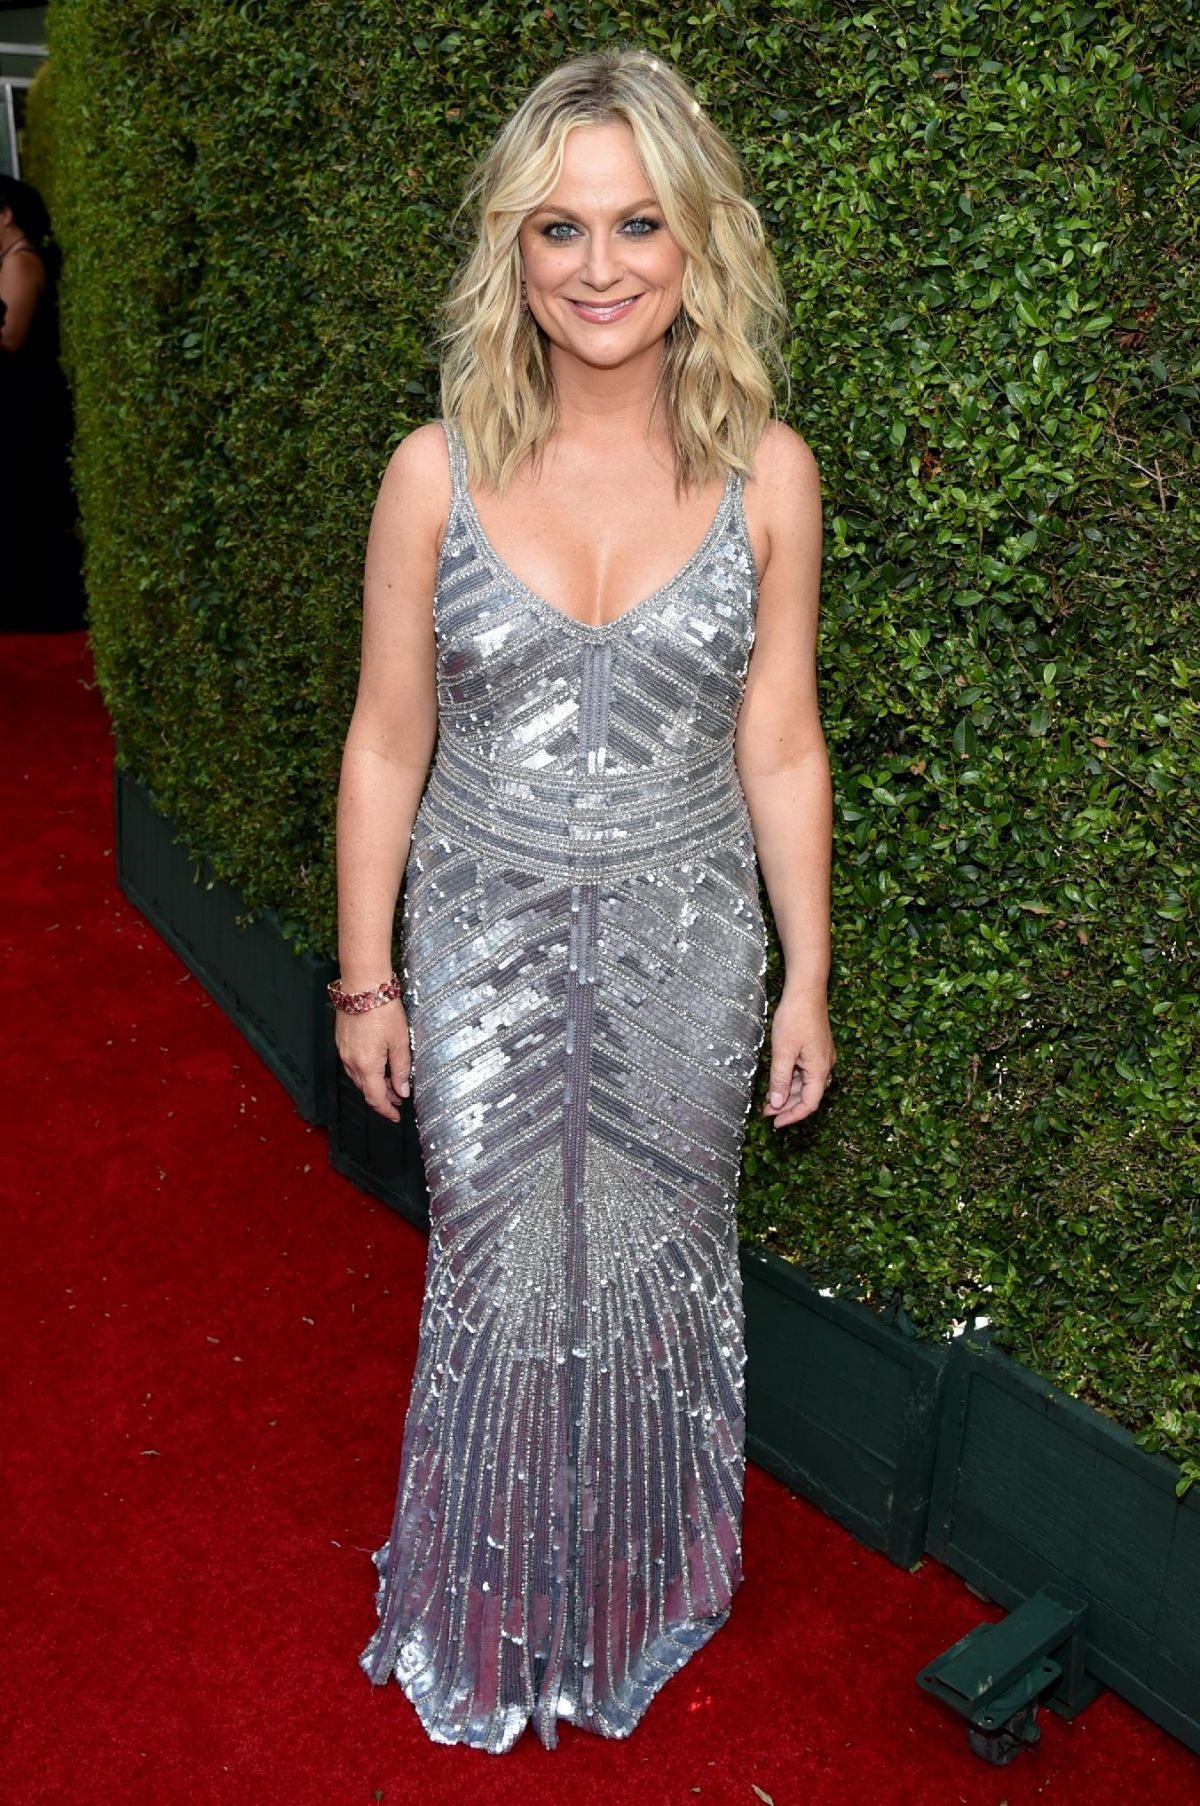 YinG amy poehler. Can see how her mouth and nose makes sharp points. Can see how dress wants to elongate her curves.